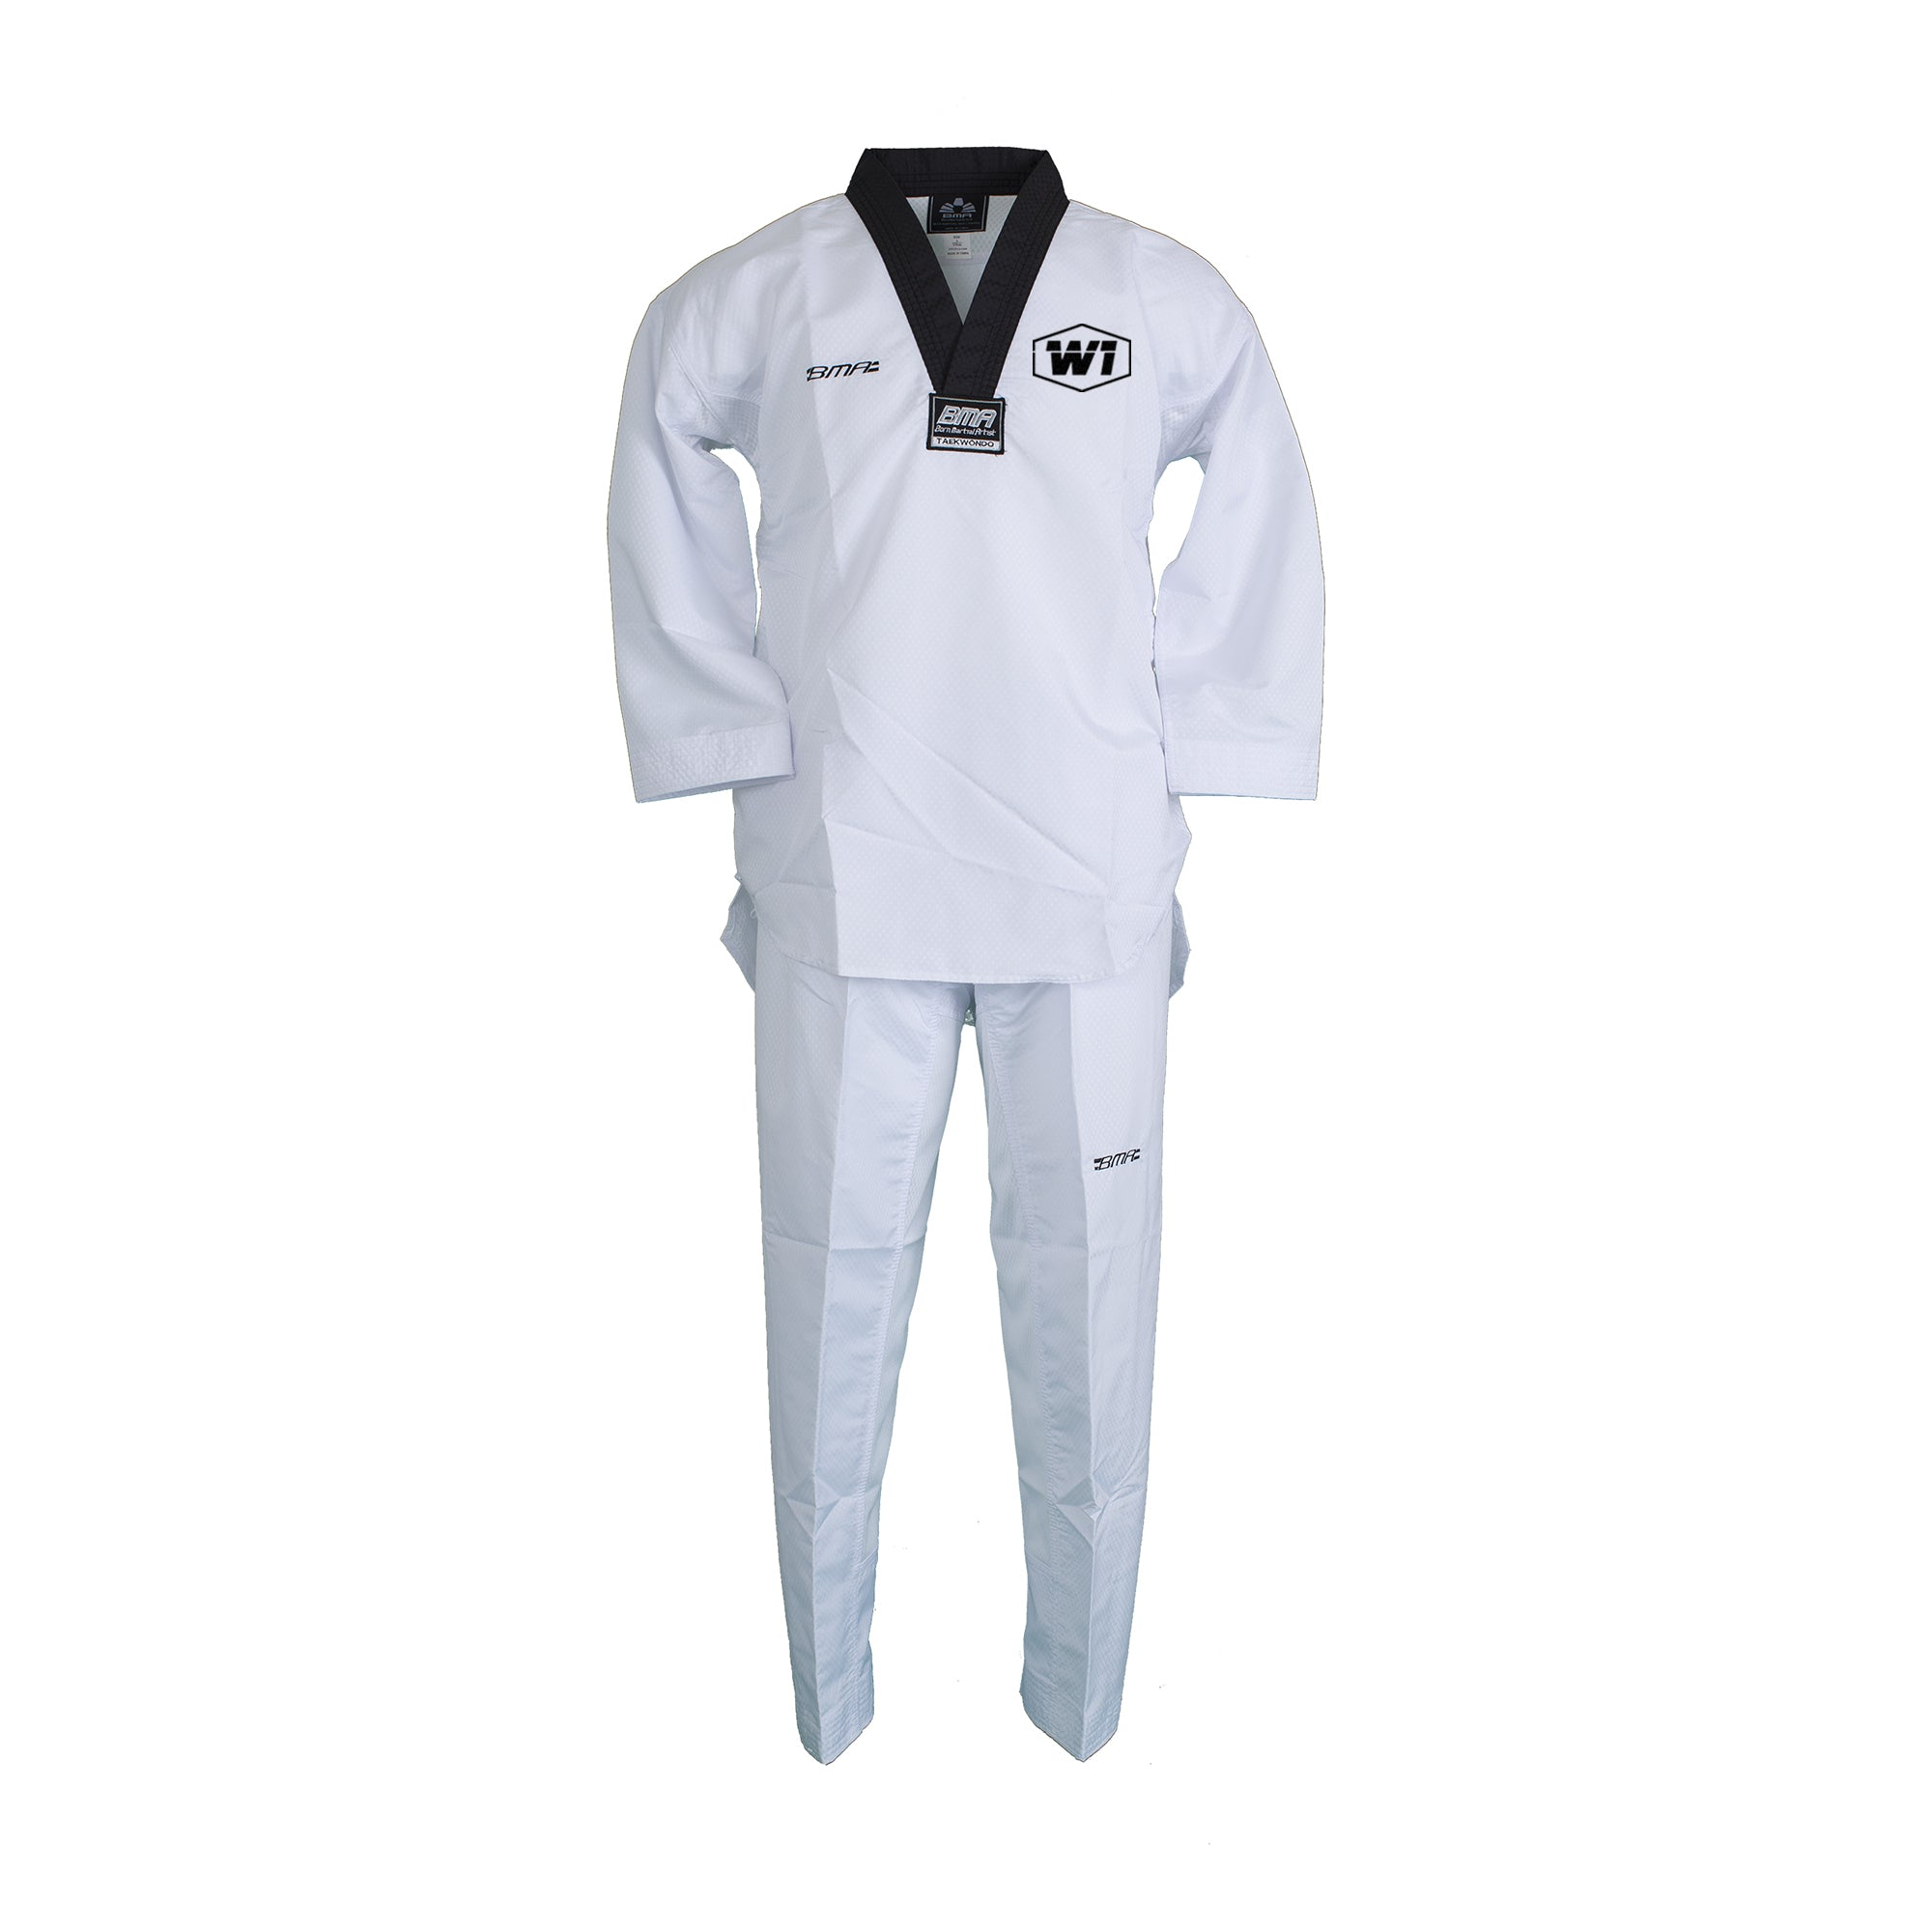 W1 Competition Ultralight Uniform